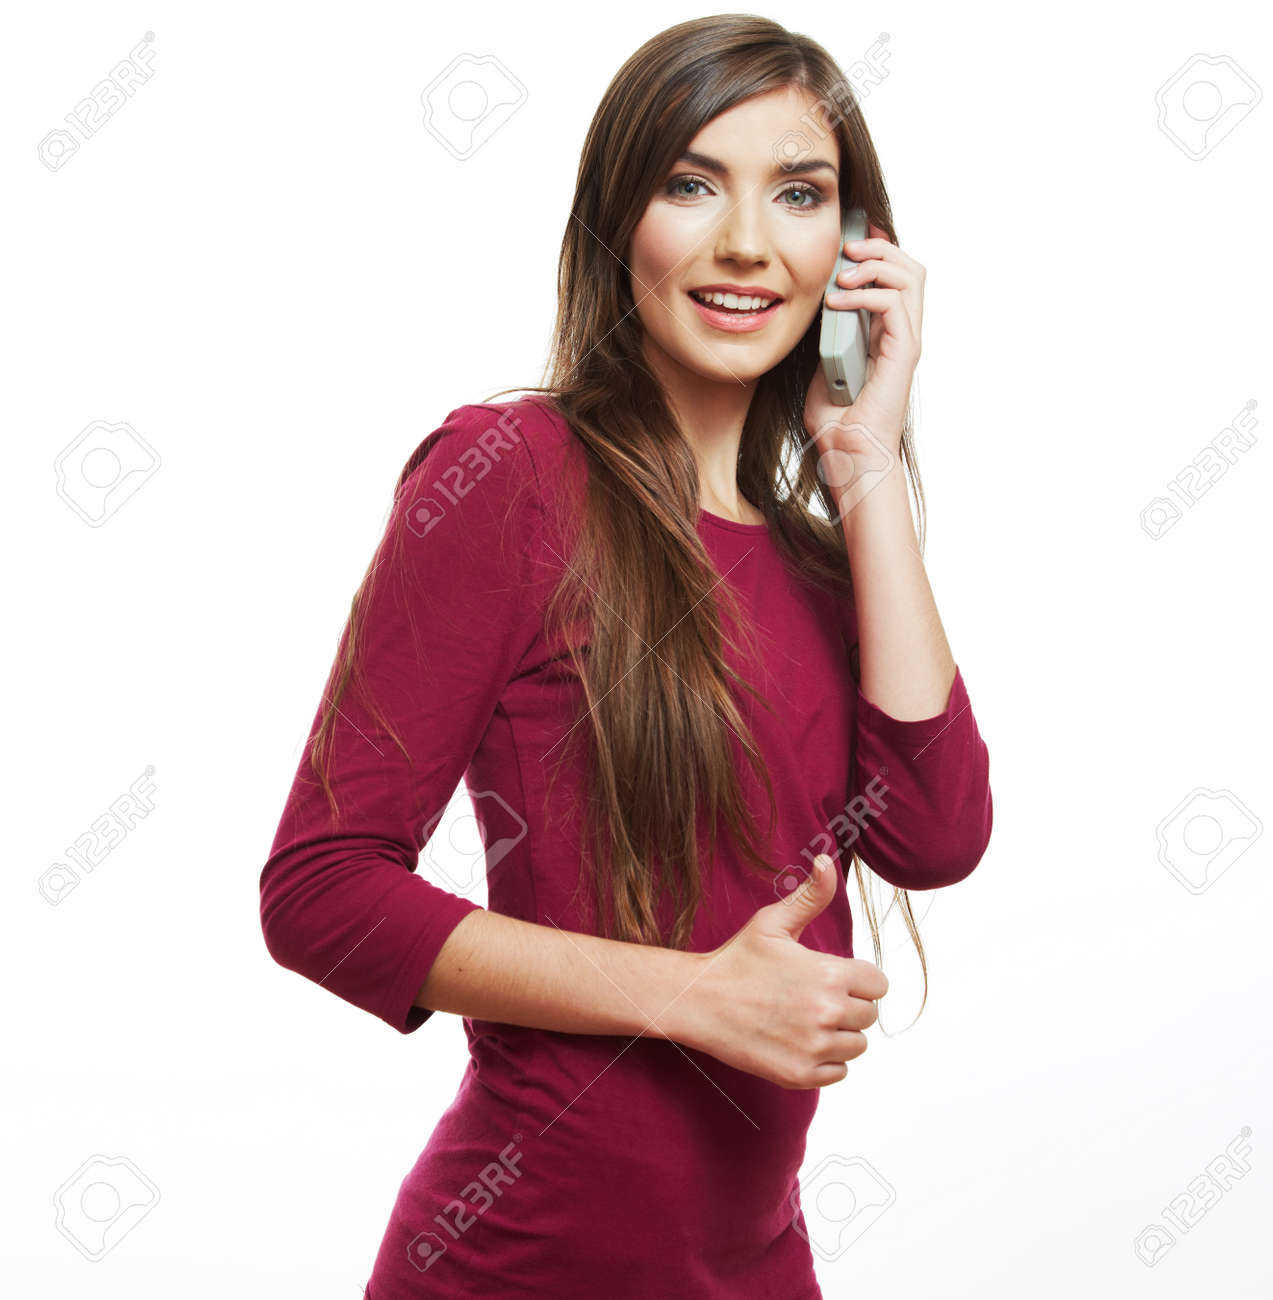 Young casual style woman portrait using phone, isolated over white background. - 134128703